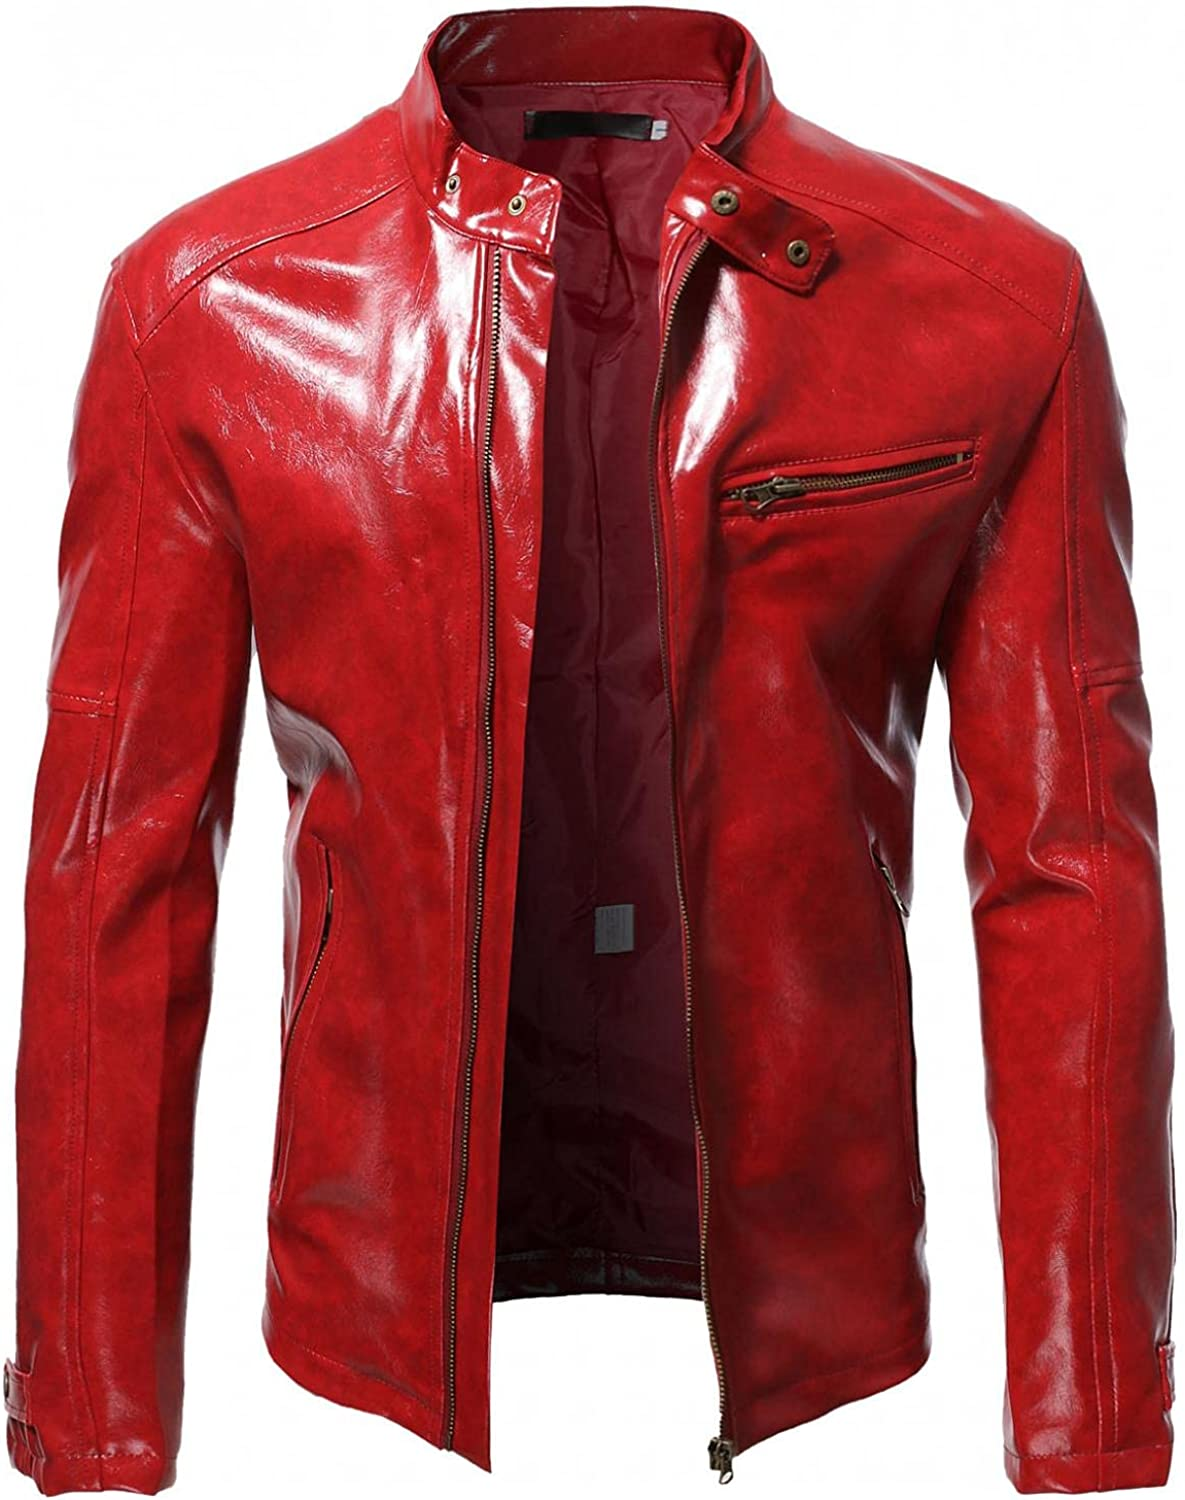 SUIQU Men's Stand Collar Leather Jacket Motorcycle Lightweight Faux Leather Outwear Fashion Zipper Pocket Jacket Coat